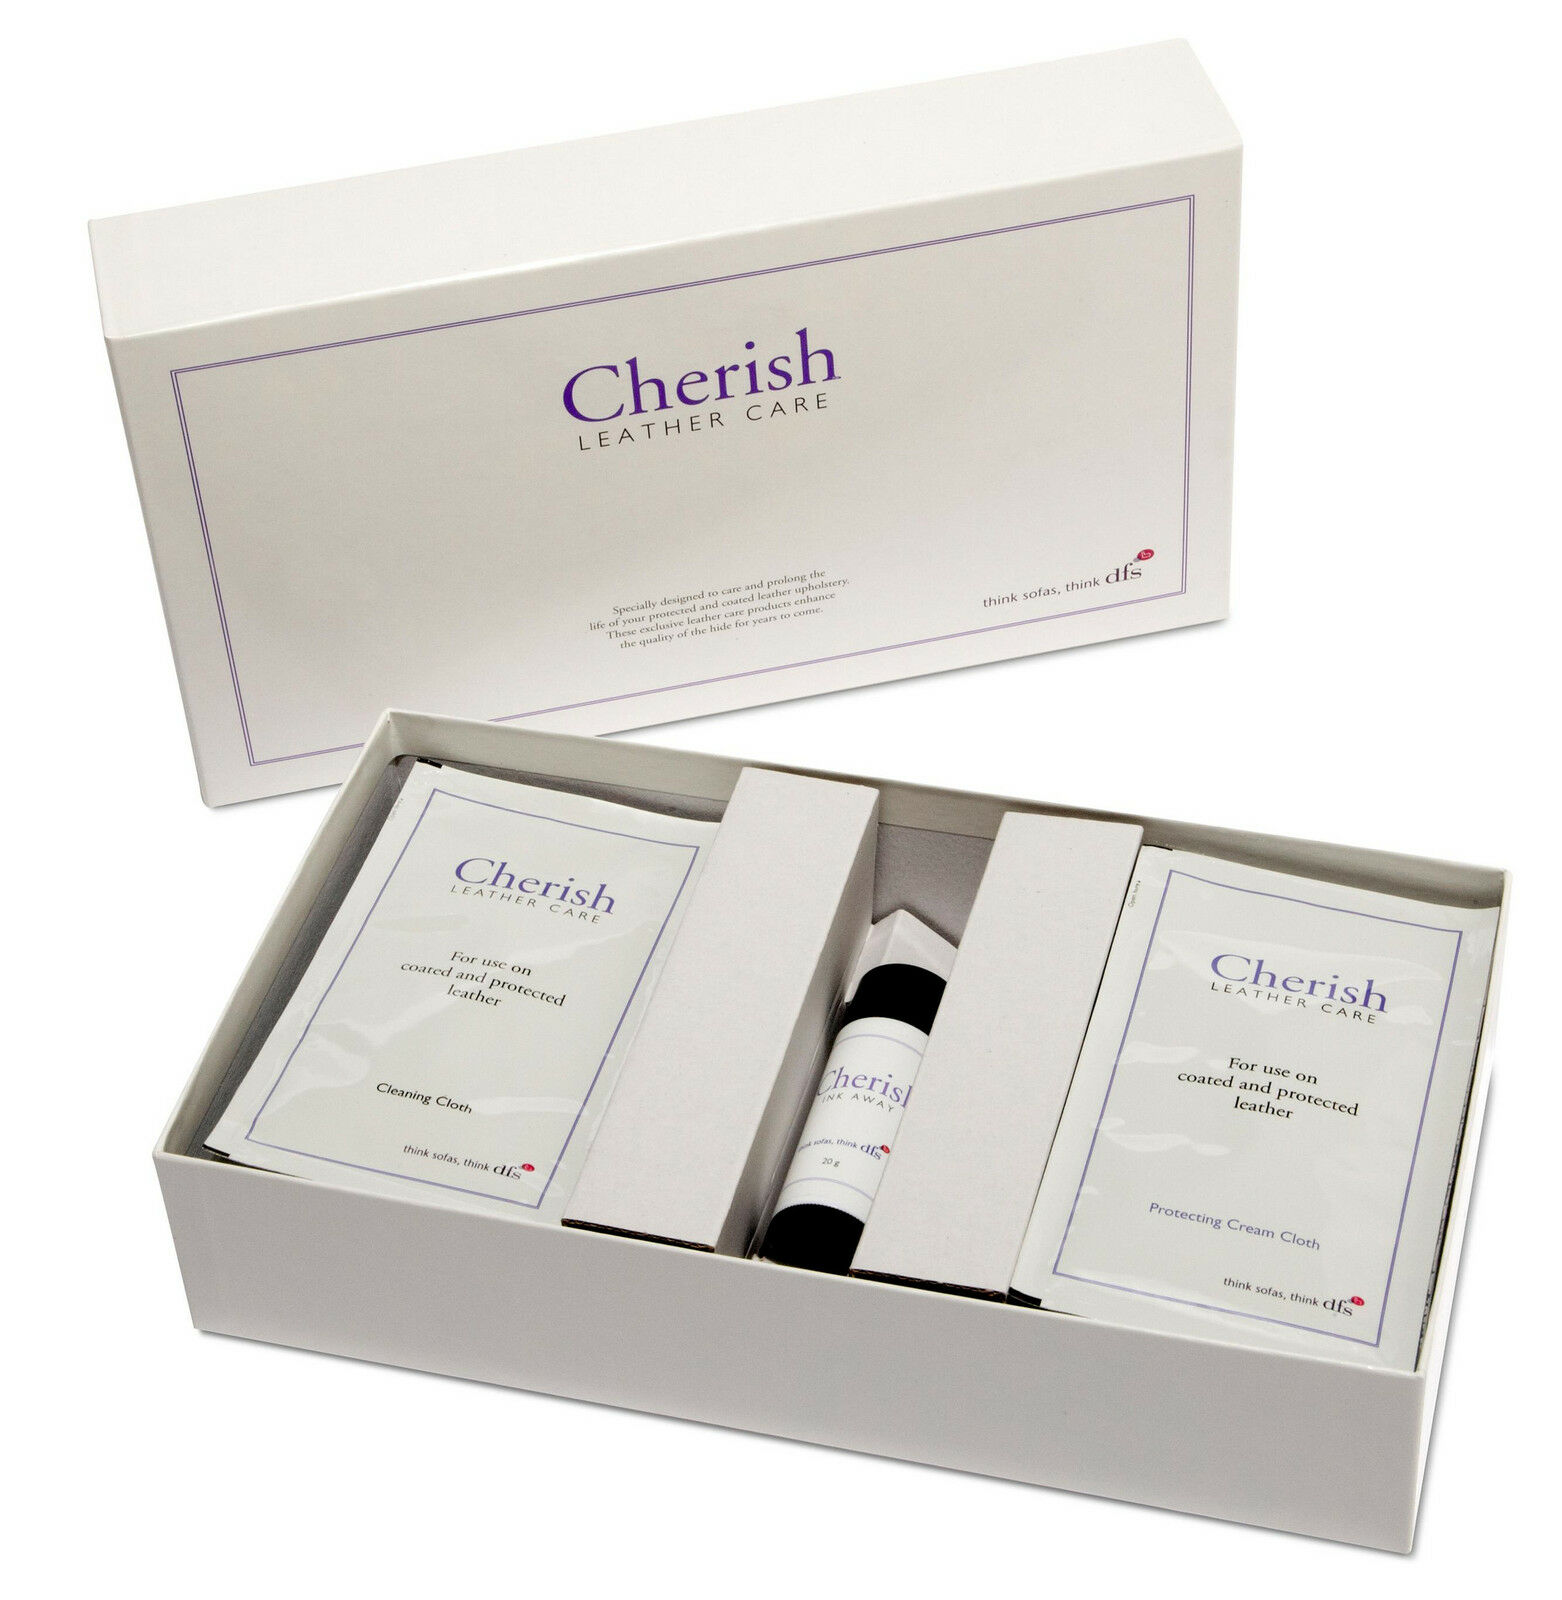 DFS ficial Cherish leather Sofa Cleaner Care Kit With Wipes and